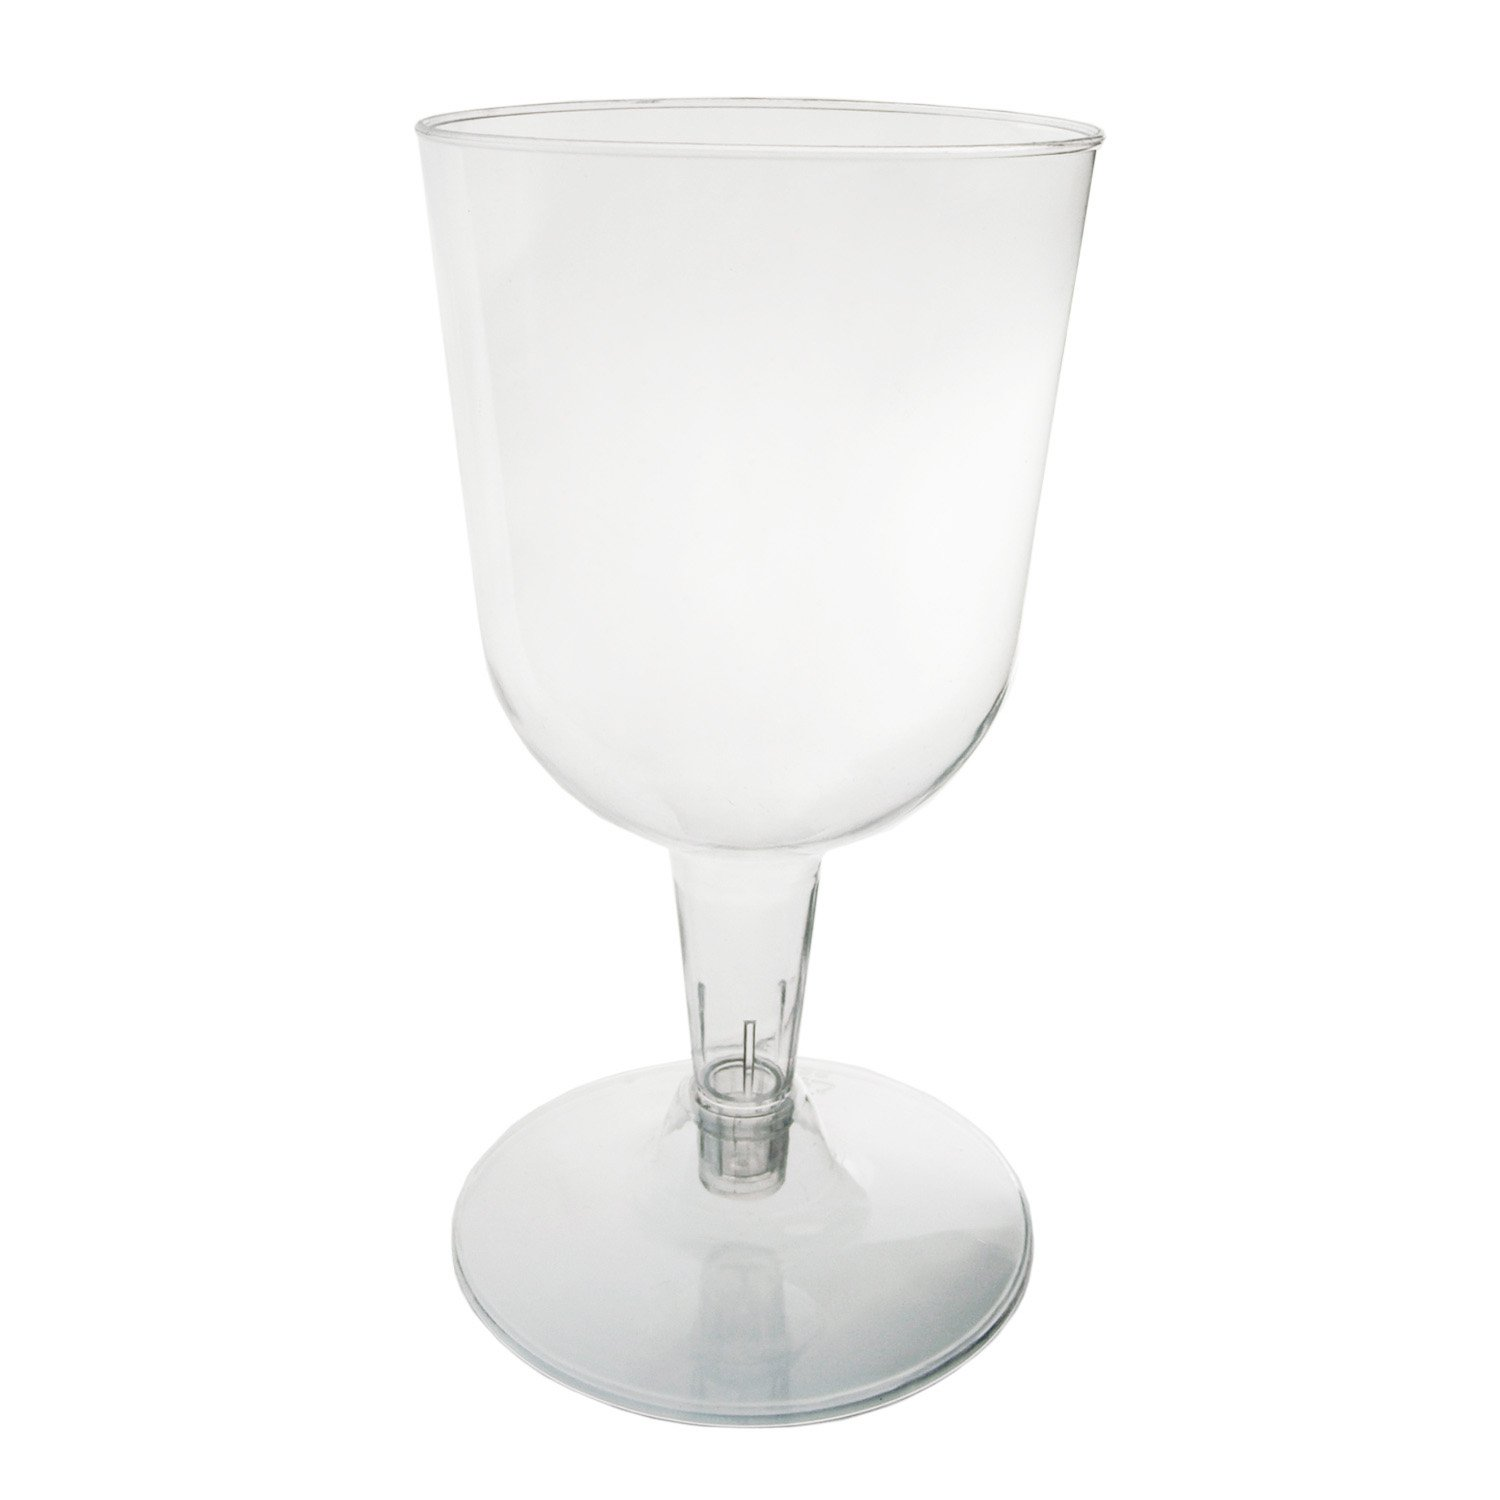 Party Essentials N55021 Hard Plastic 5.5-Oun 2-Piece Wine Glass Sale SALE% OFF 2021 spring and summer new